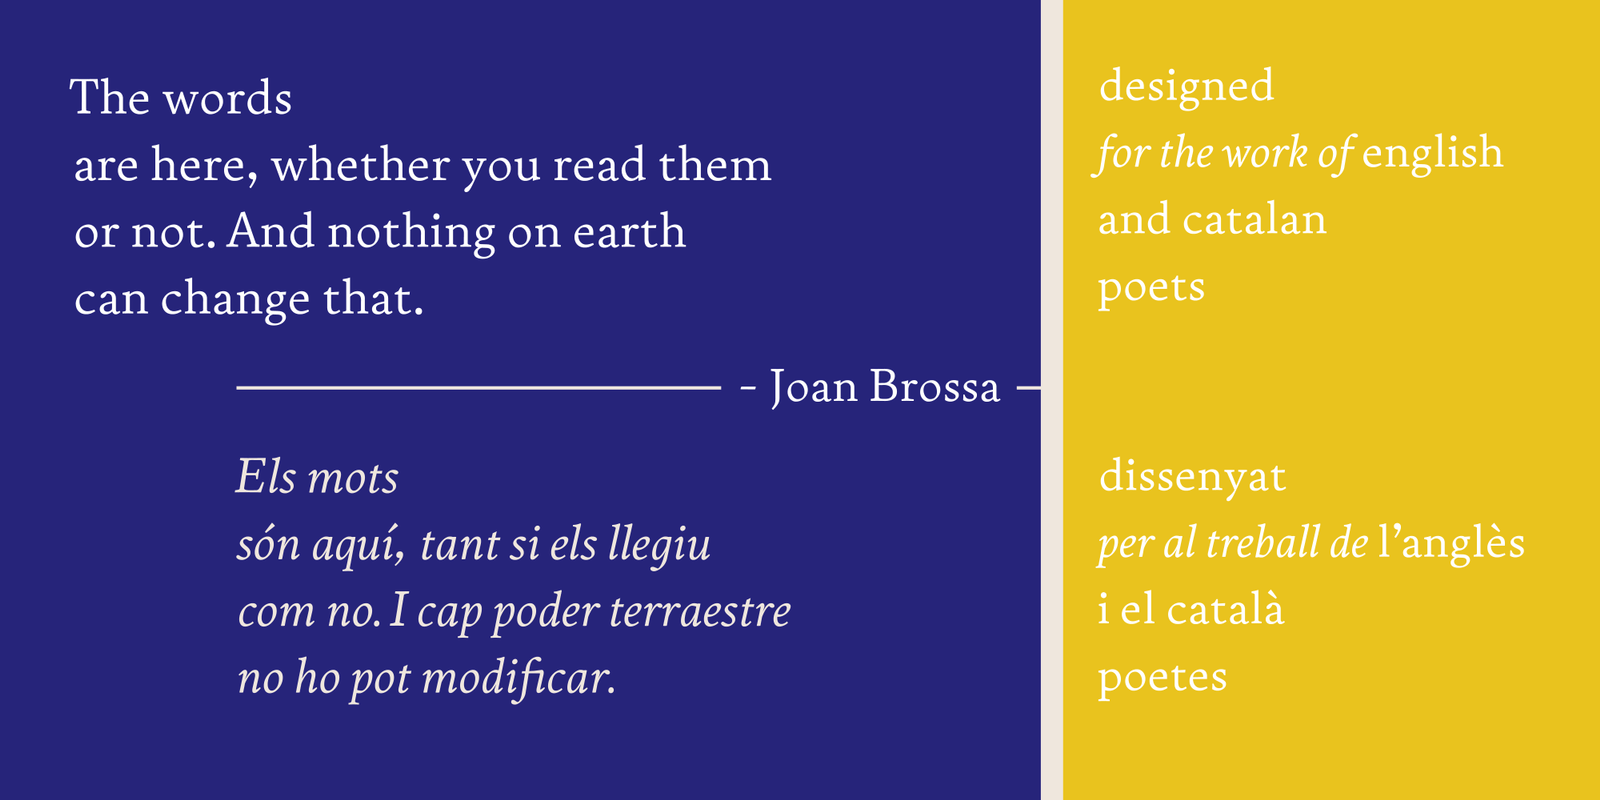 An image of paragraphs of type showing off the Executant typeface in dark blue and yellow.